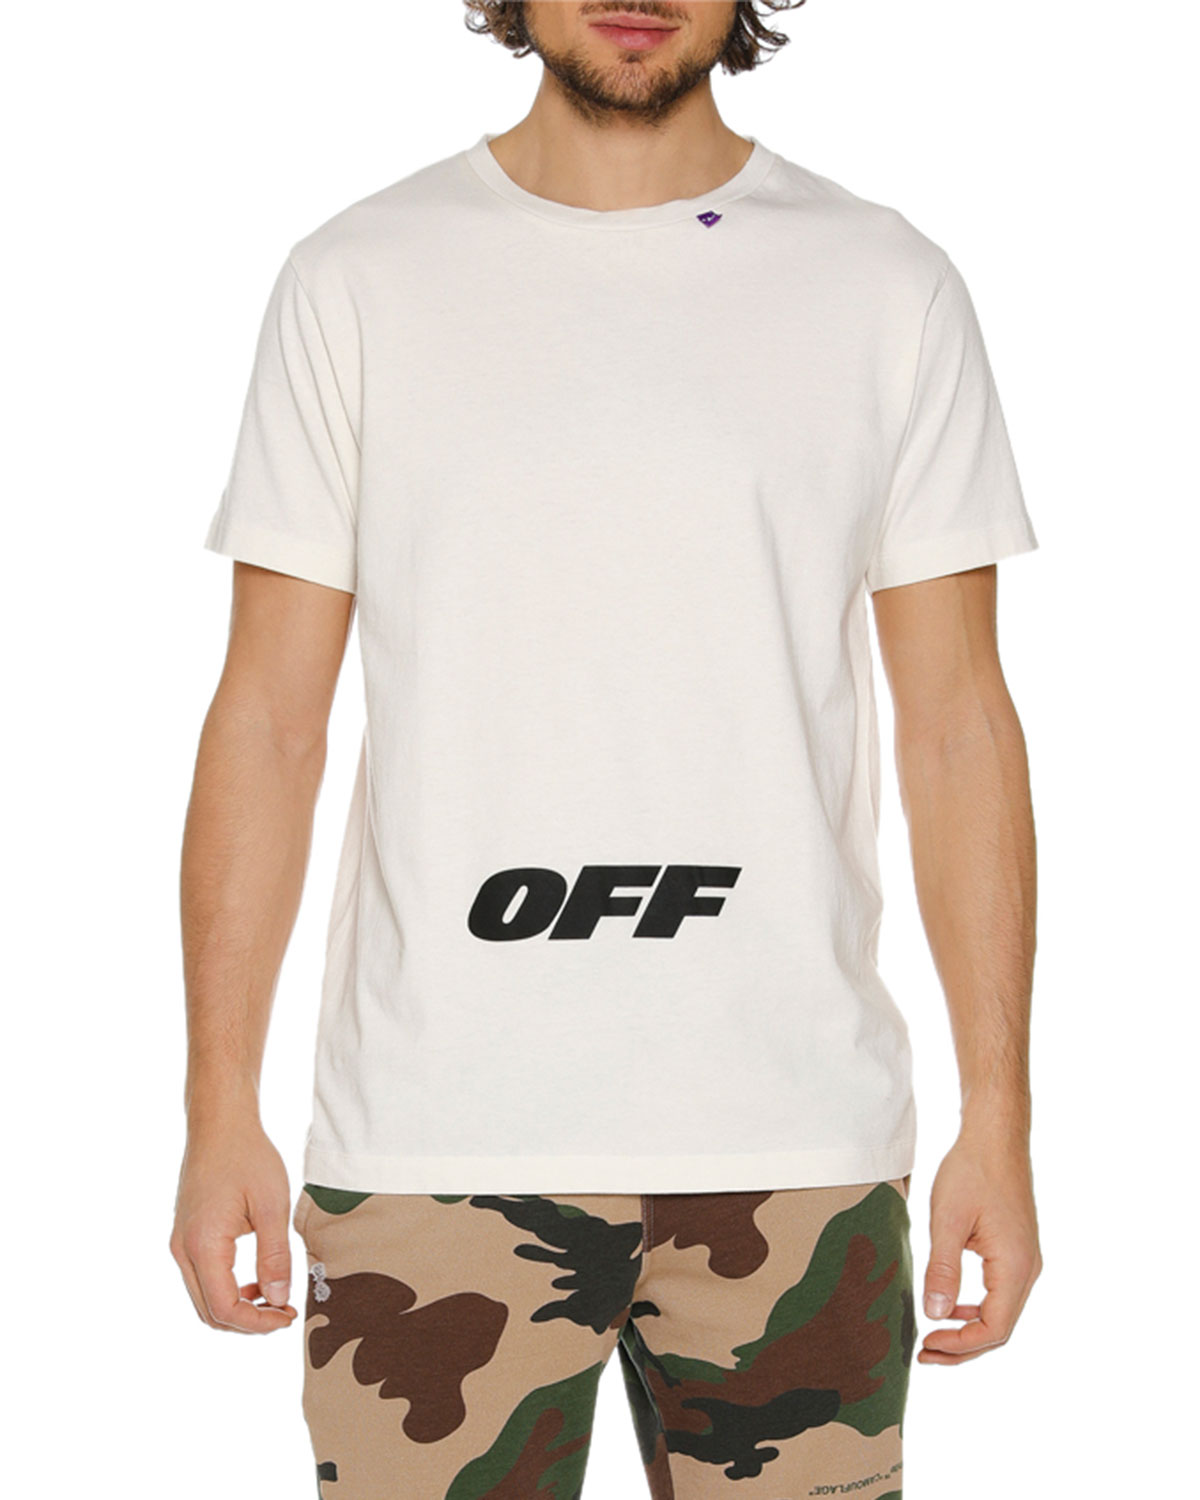 Off White Mens Wing Off Graphic Slim T Shirt Neiman Marcus